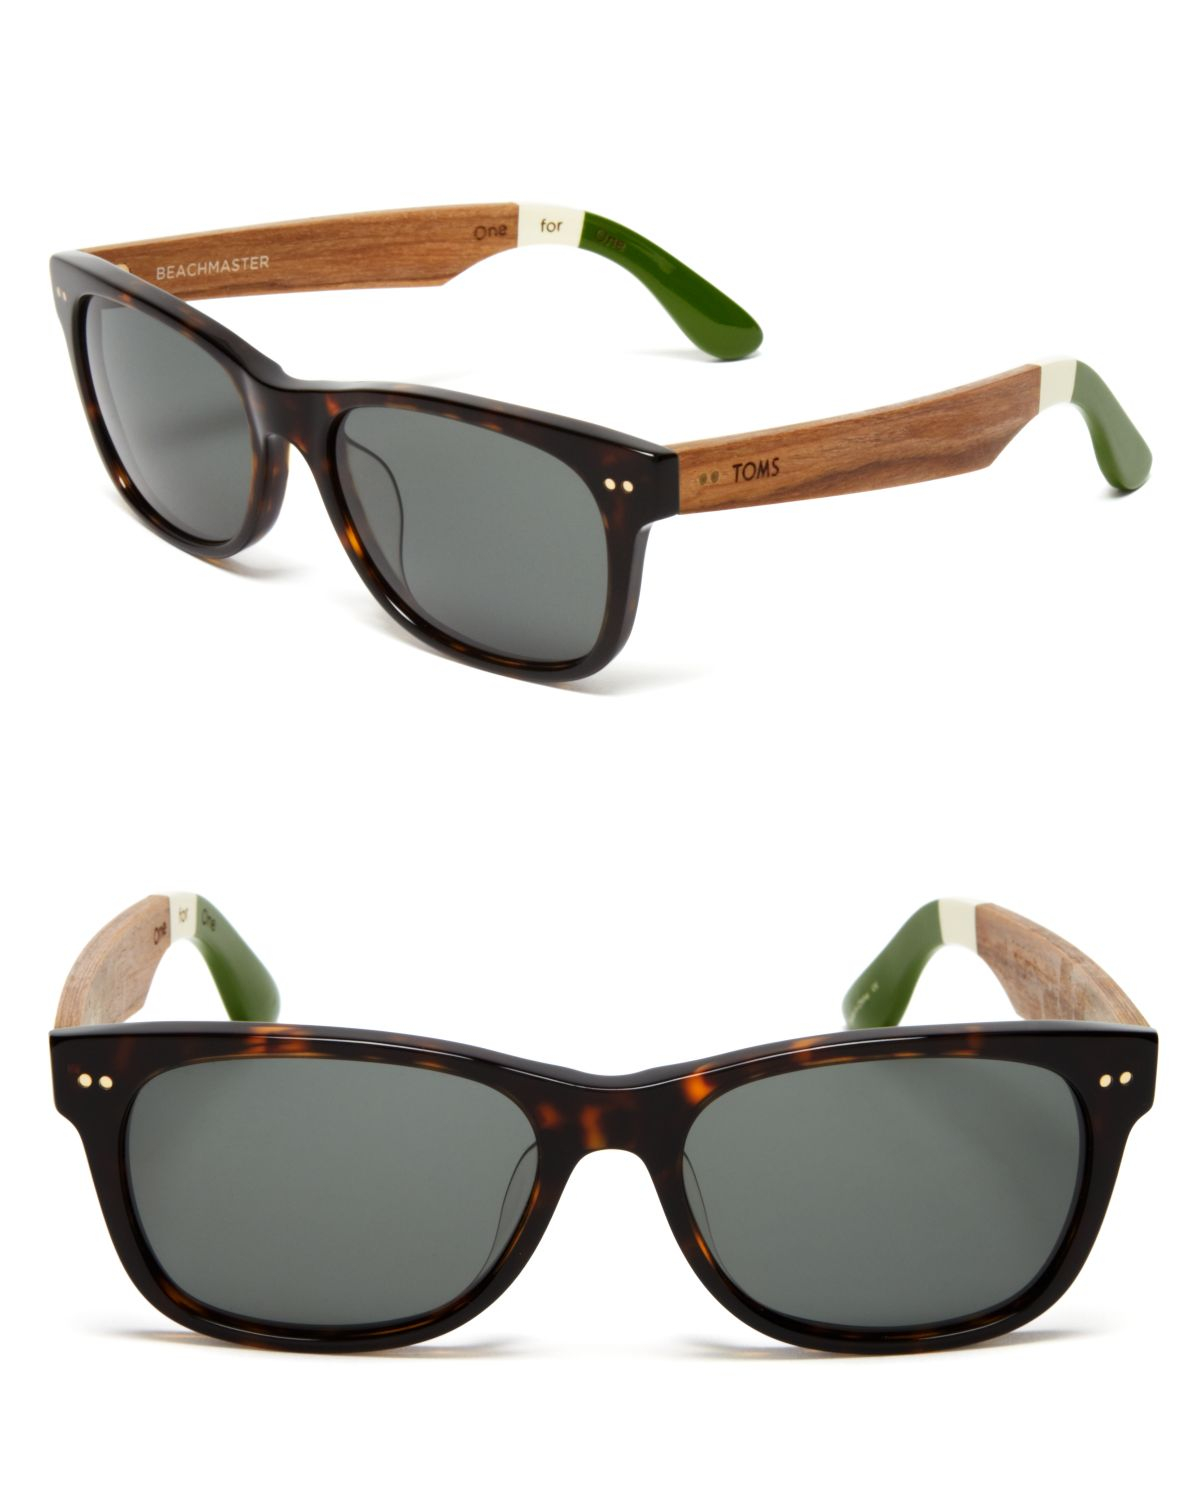 Lyst - Toms Beachmaster Sunglasses in Brown